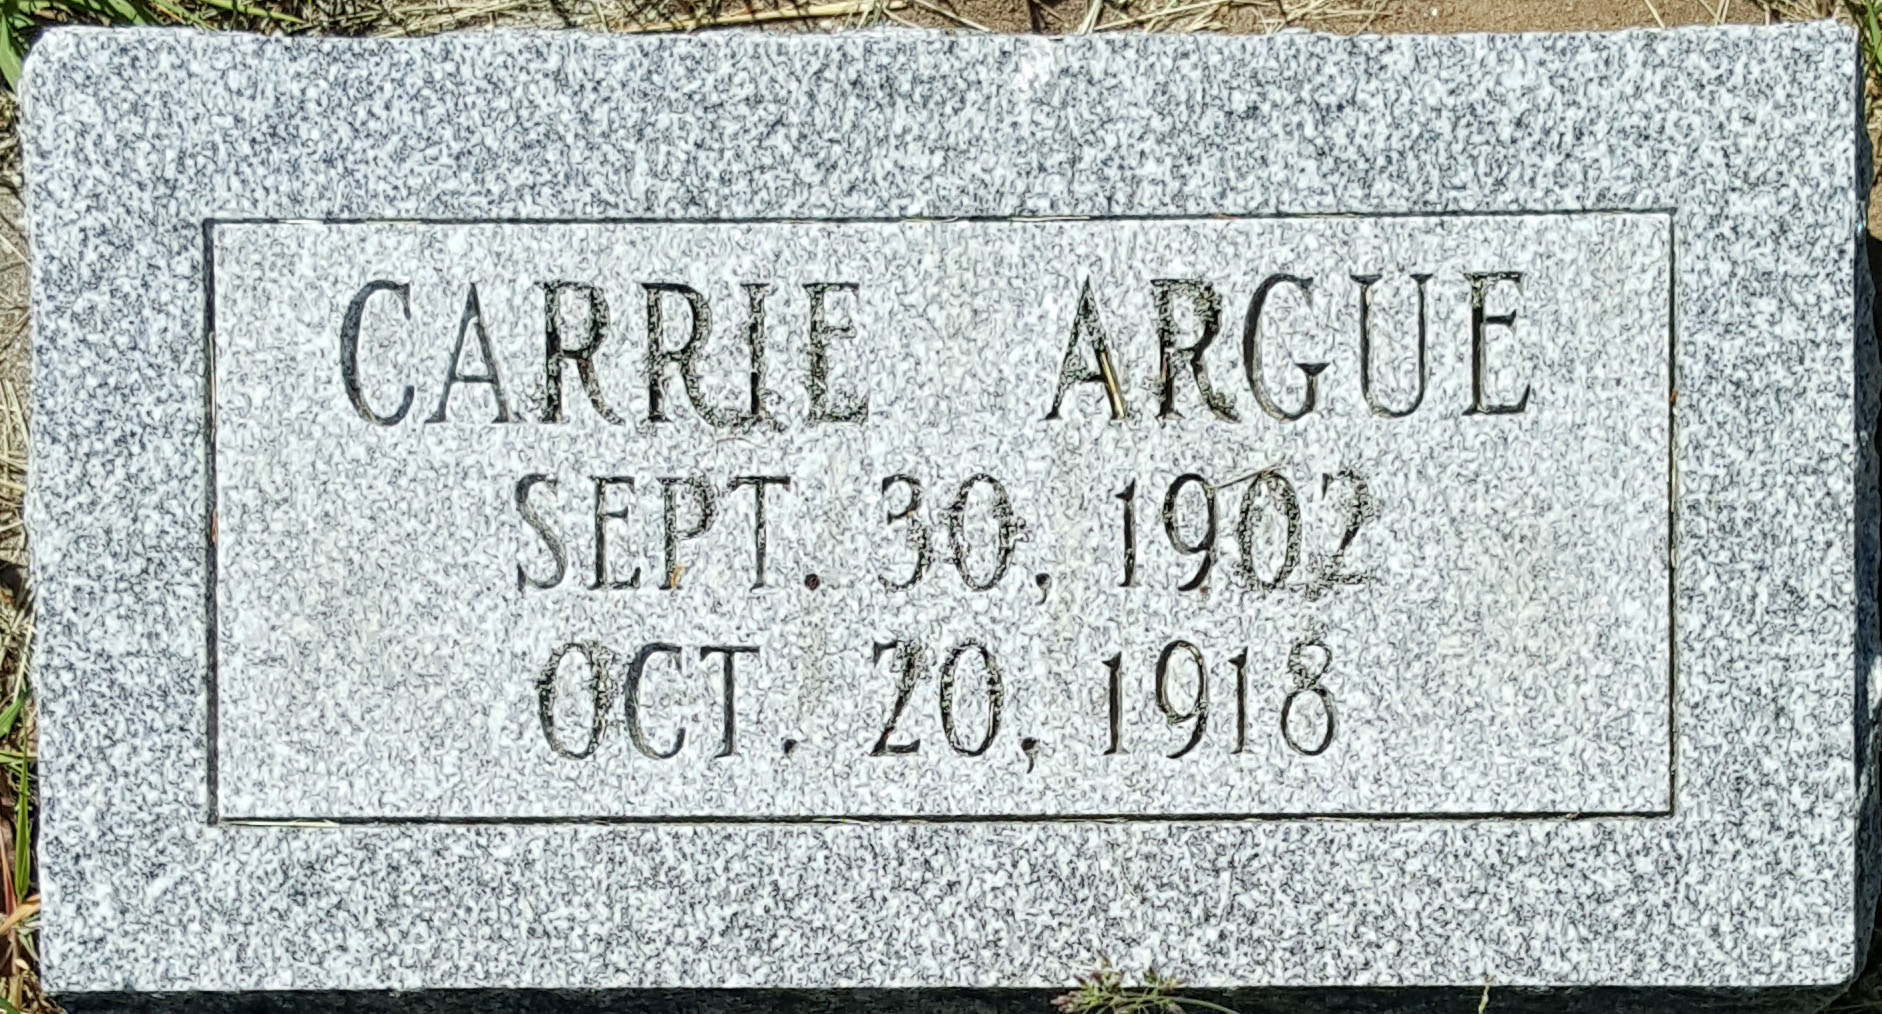 Carrie Argue's Marker